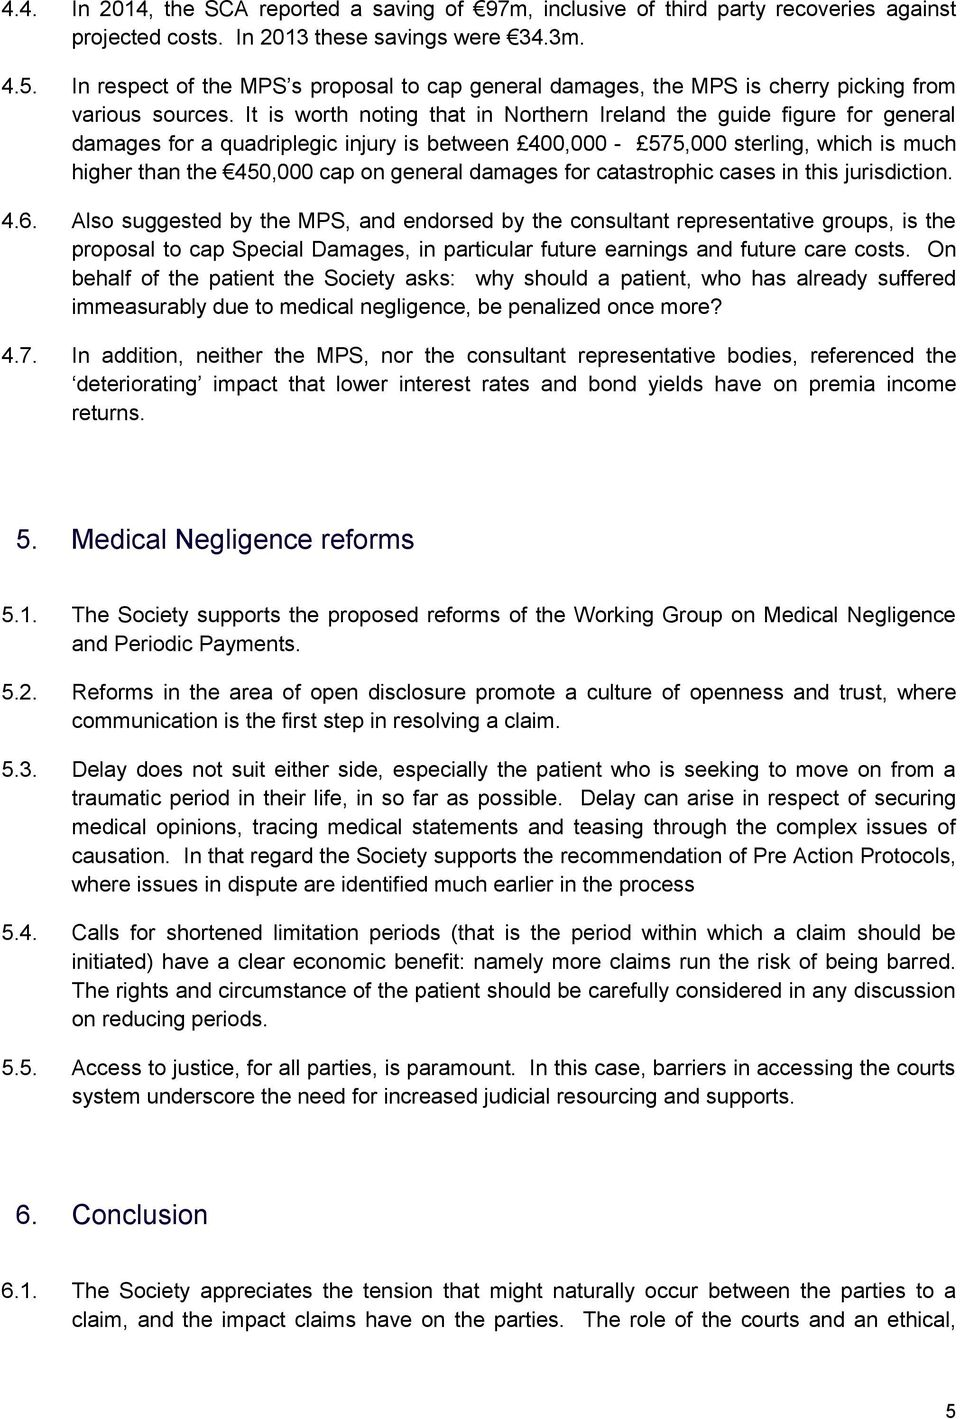 It is worth noting that in Northern Ireland the guide figure for general damages for a quadriplegic injury is between 400,000-575,000 sterling, which is much higher than the 450,000 cap on general